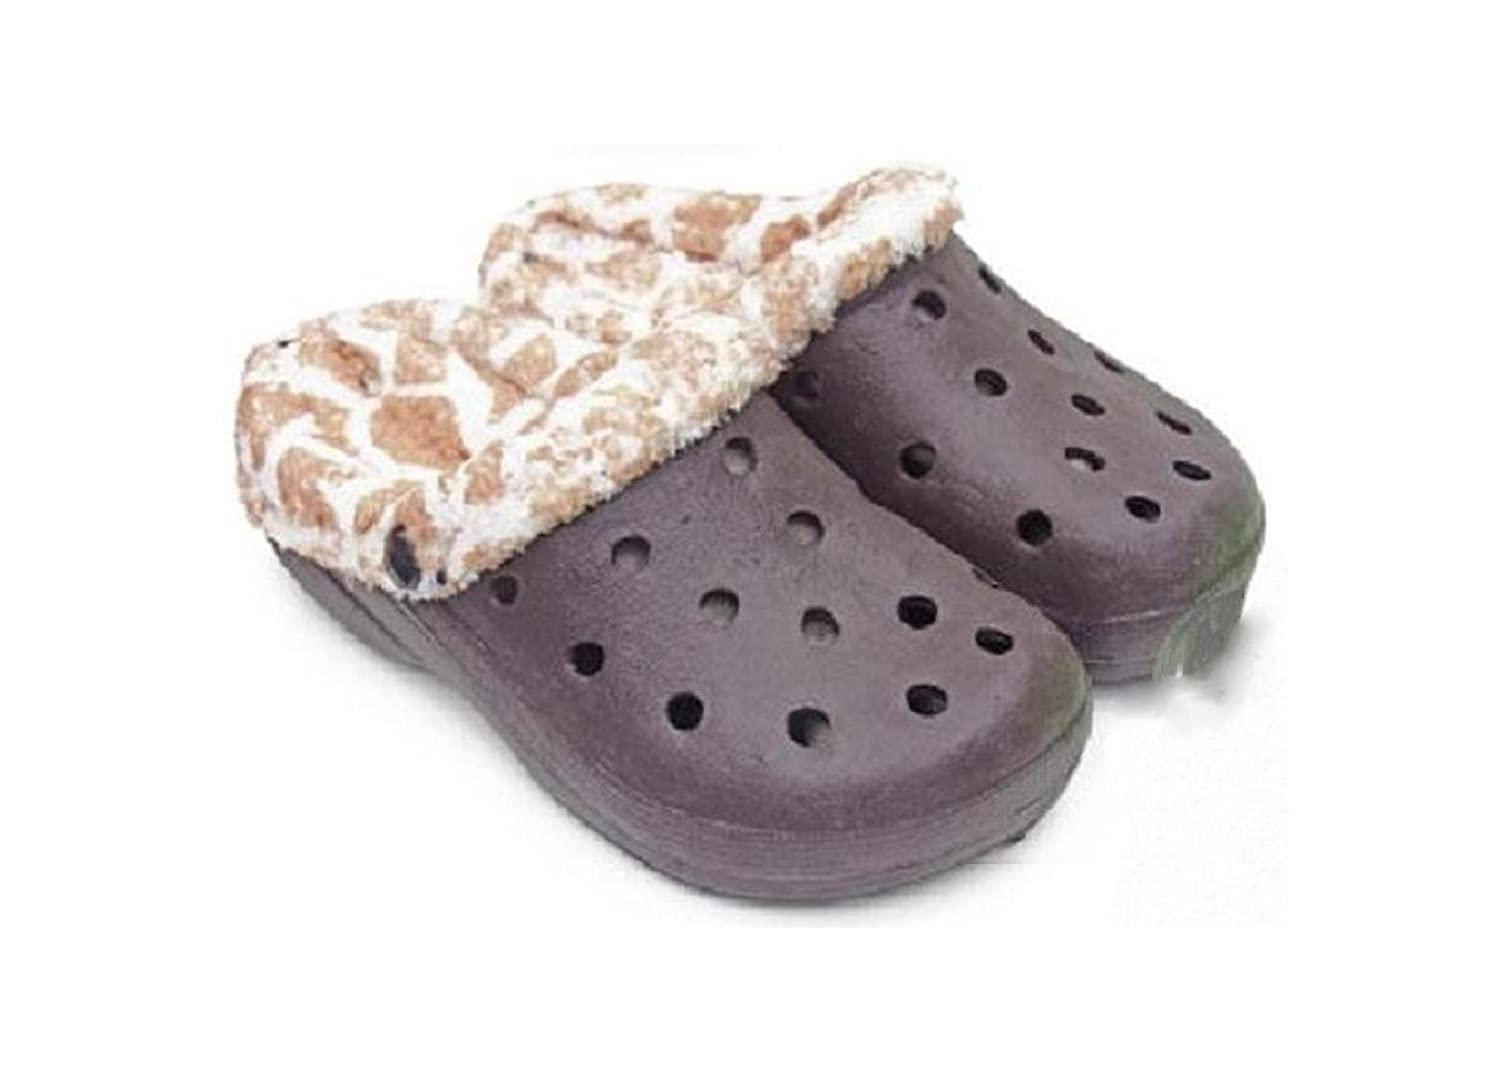 DINY Home & Style Fleece Lined Children's Indoor Outdoor Fluffy Clogs Slippers